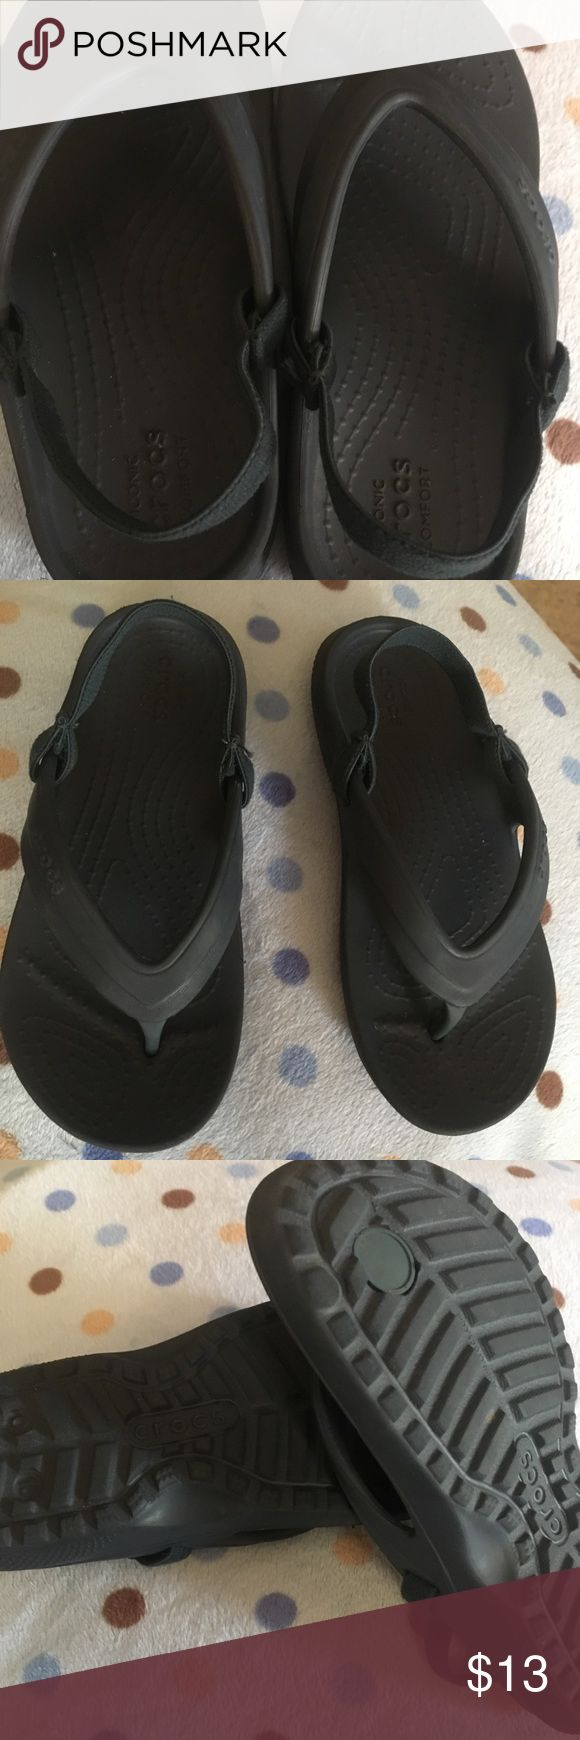 Crocs iconic comfort! Size C10! Crocs iconic comfort! Size C10! It's unixes for baby or girls. Style water Sandal.It's condition used . It's plastic material.color blue marine.and everything good condition . It's beautiful easy for the baby.for more information it's and the photos. CROCS Shoes Baby & Walker